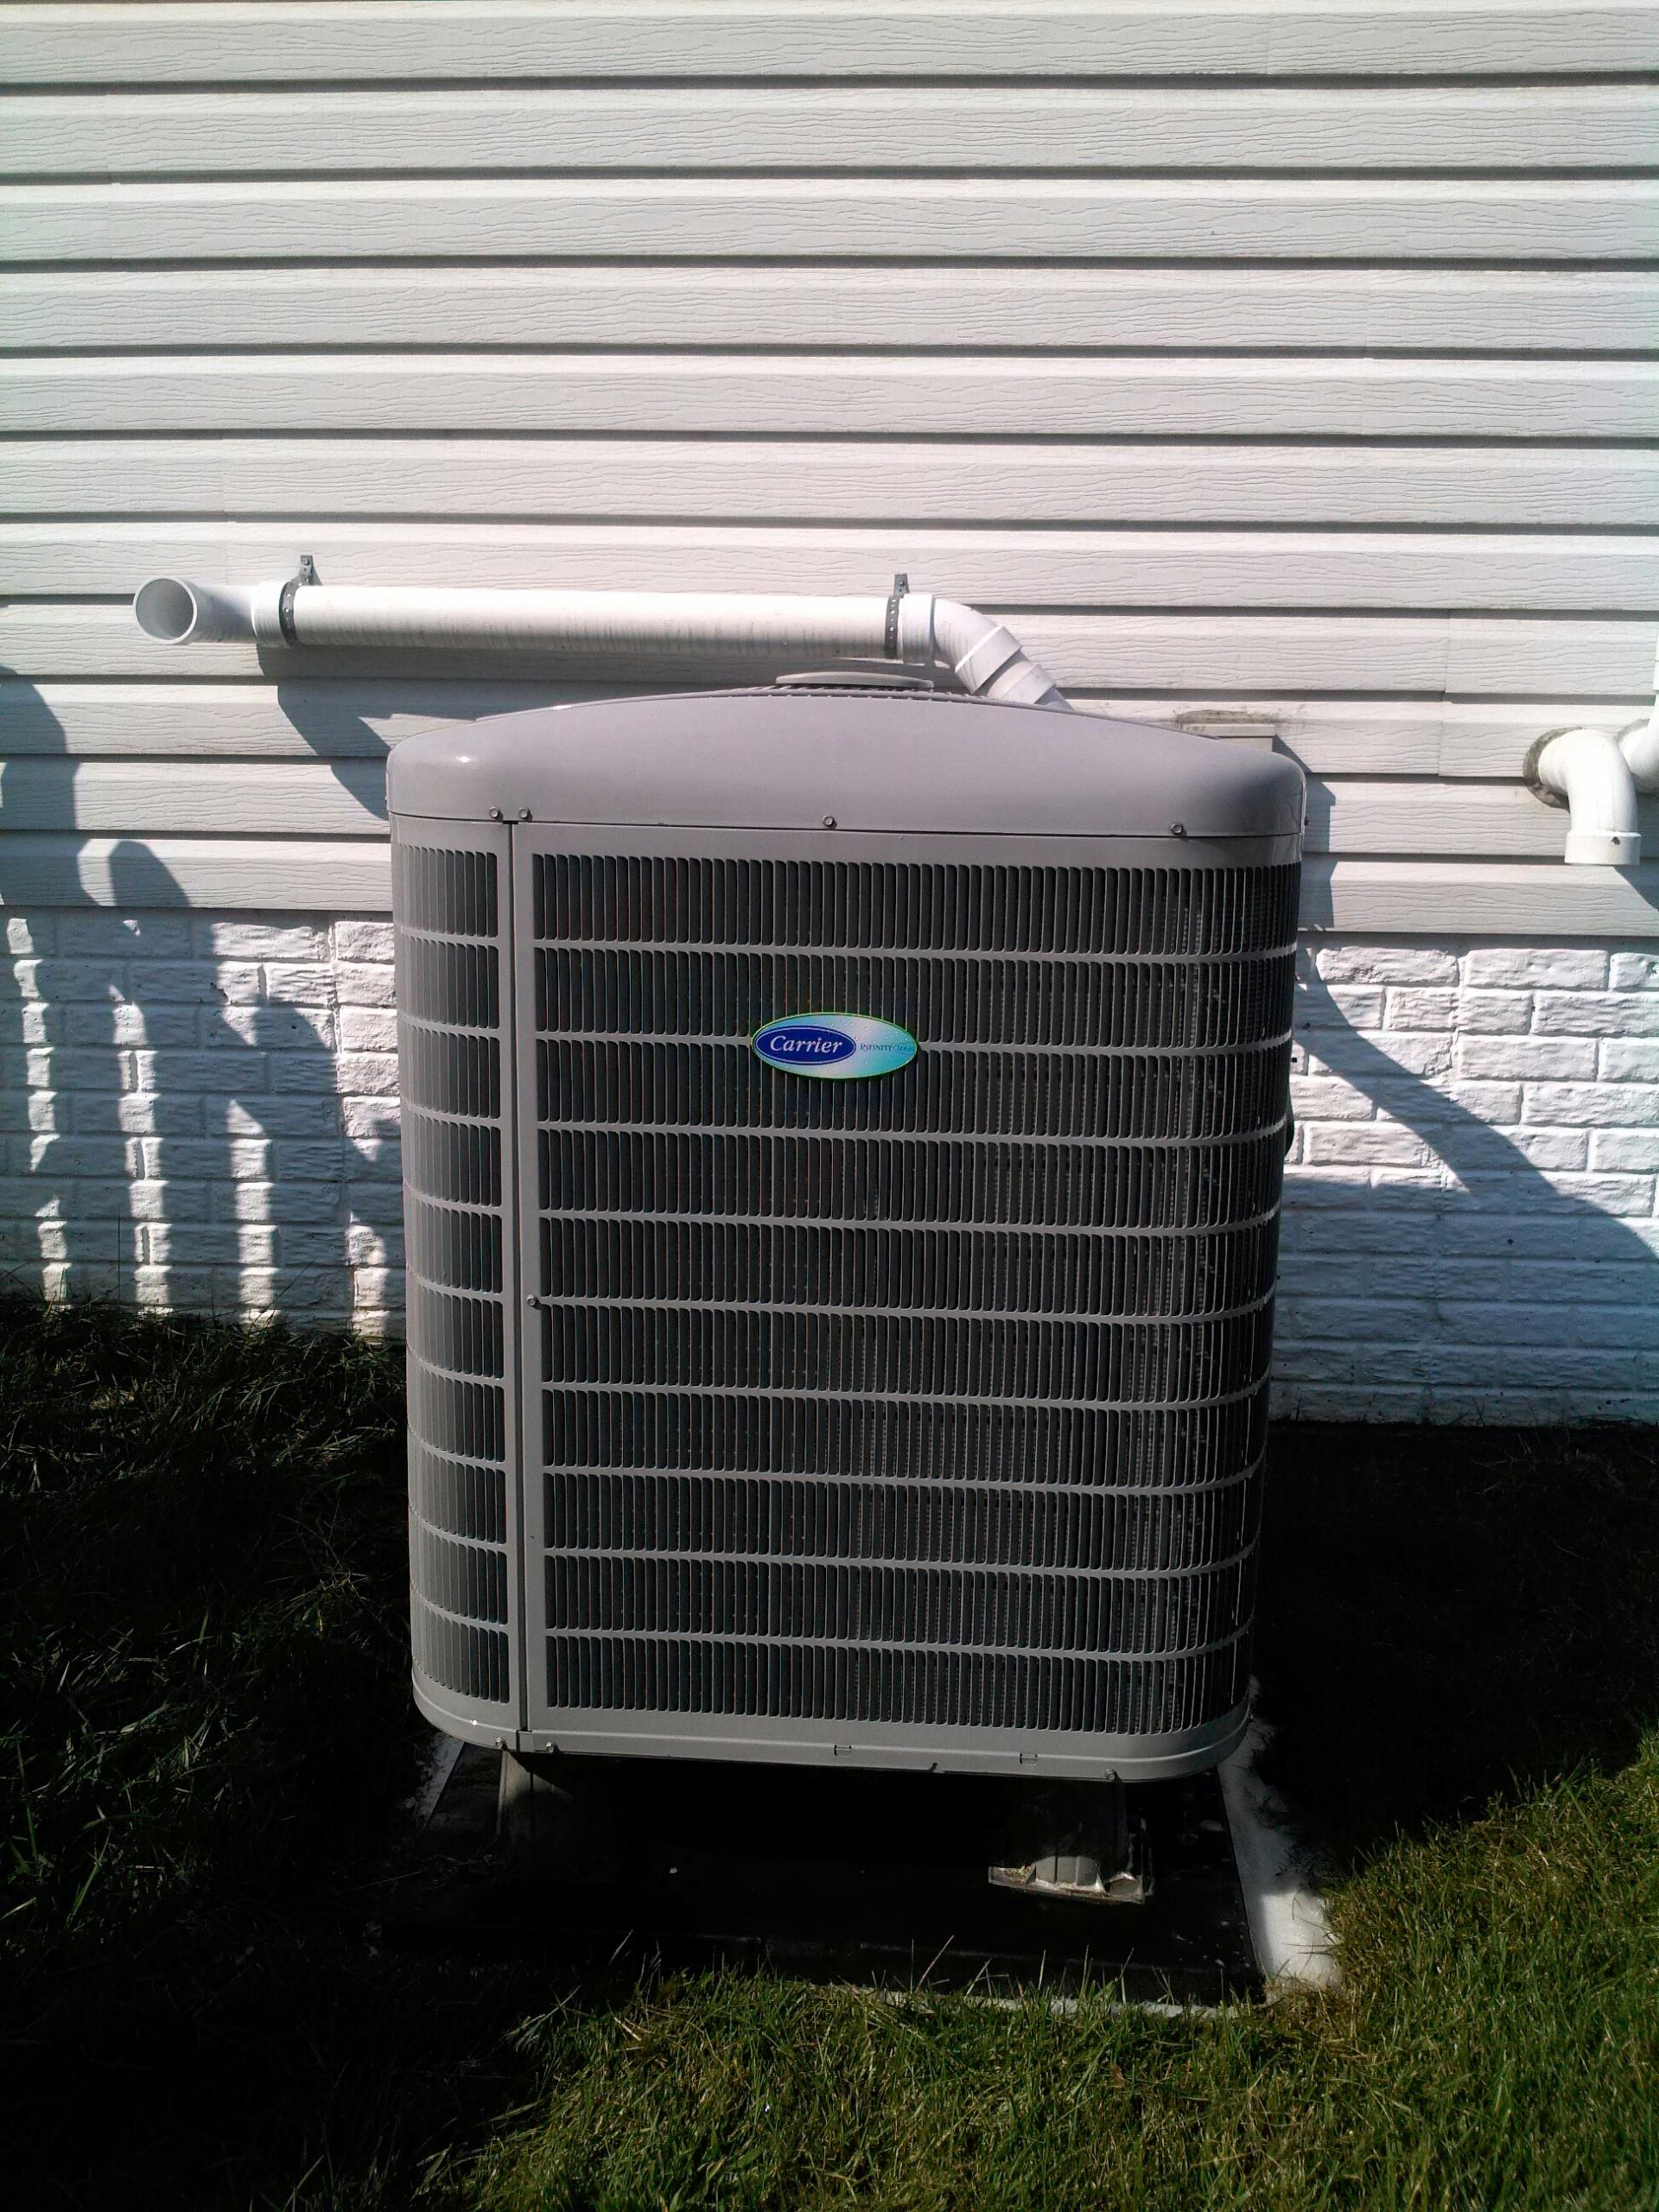 Gambrills, MD - Carrier heat pump heating & air conditioning system replacement installation repair service call Gambrills Maryland 21054